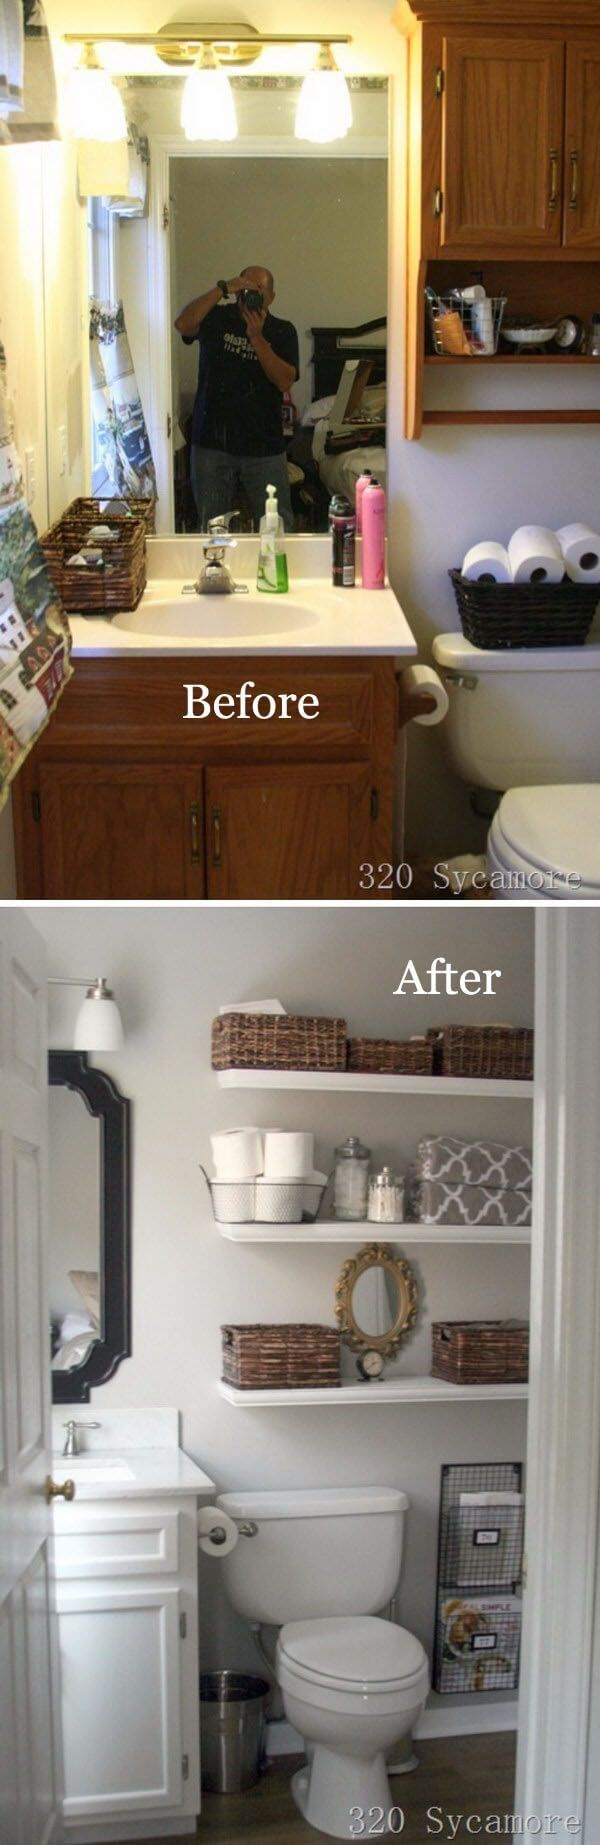 28 Before And After: Budget Friendly Bathroom Makeovers To Inspire Your Next  Home Improvement Project